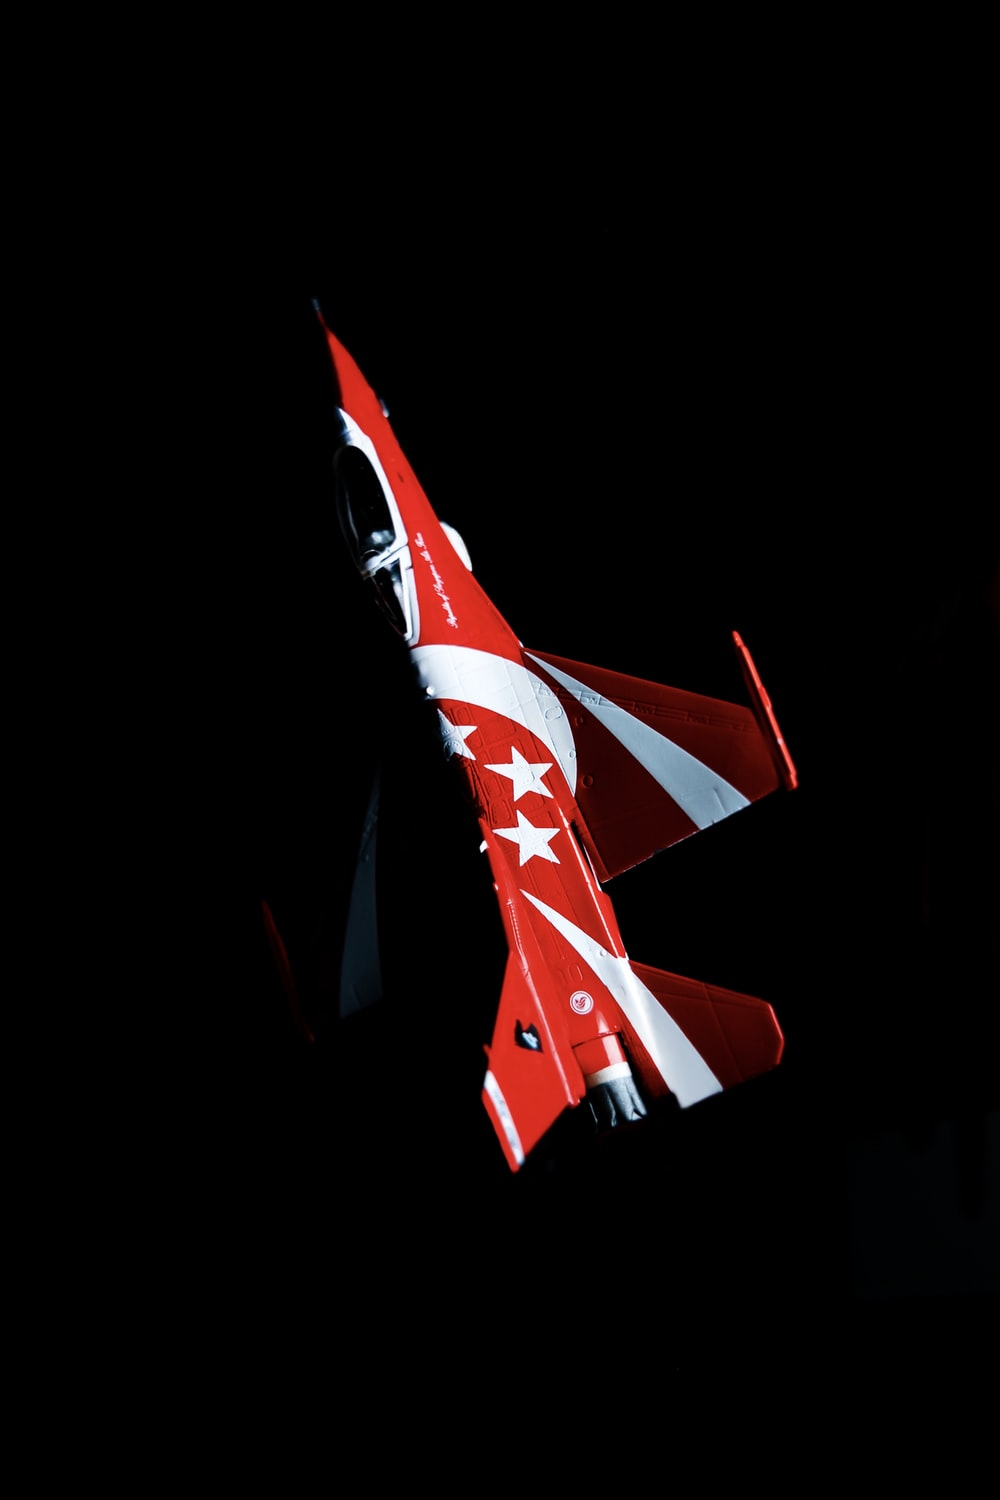 red and white plane toy